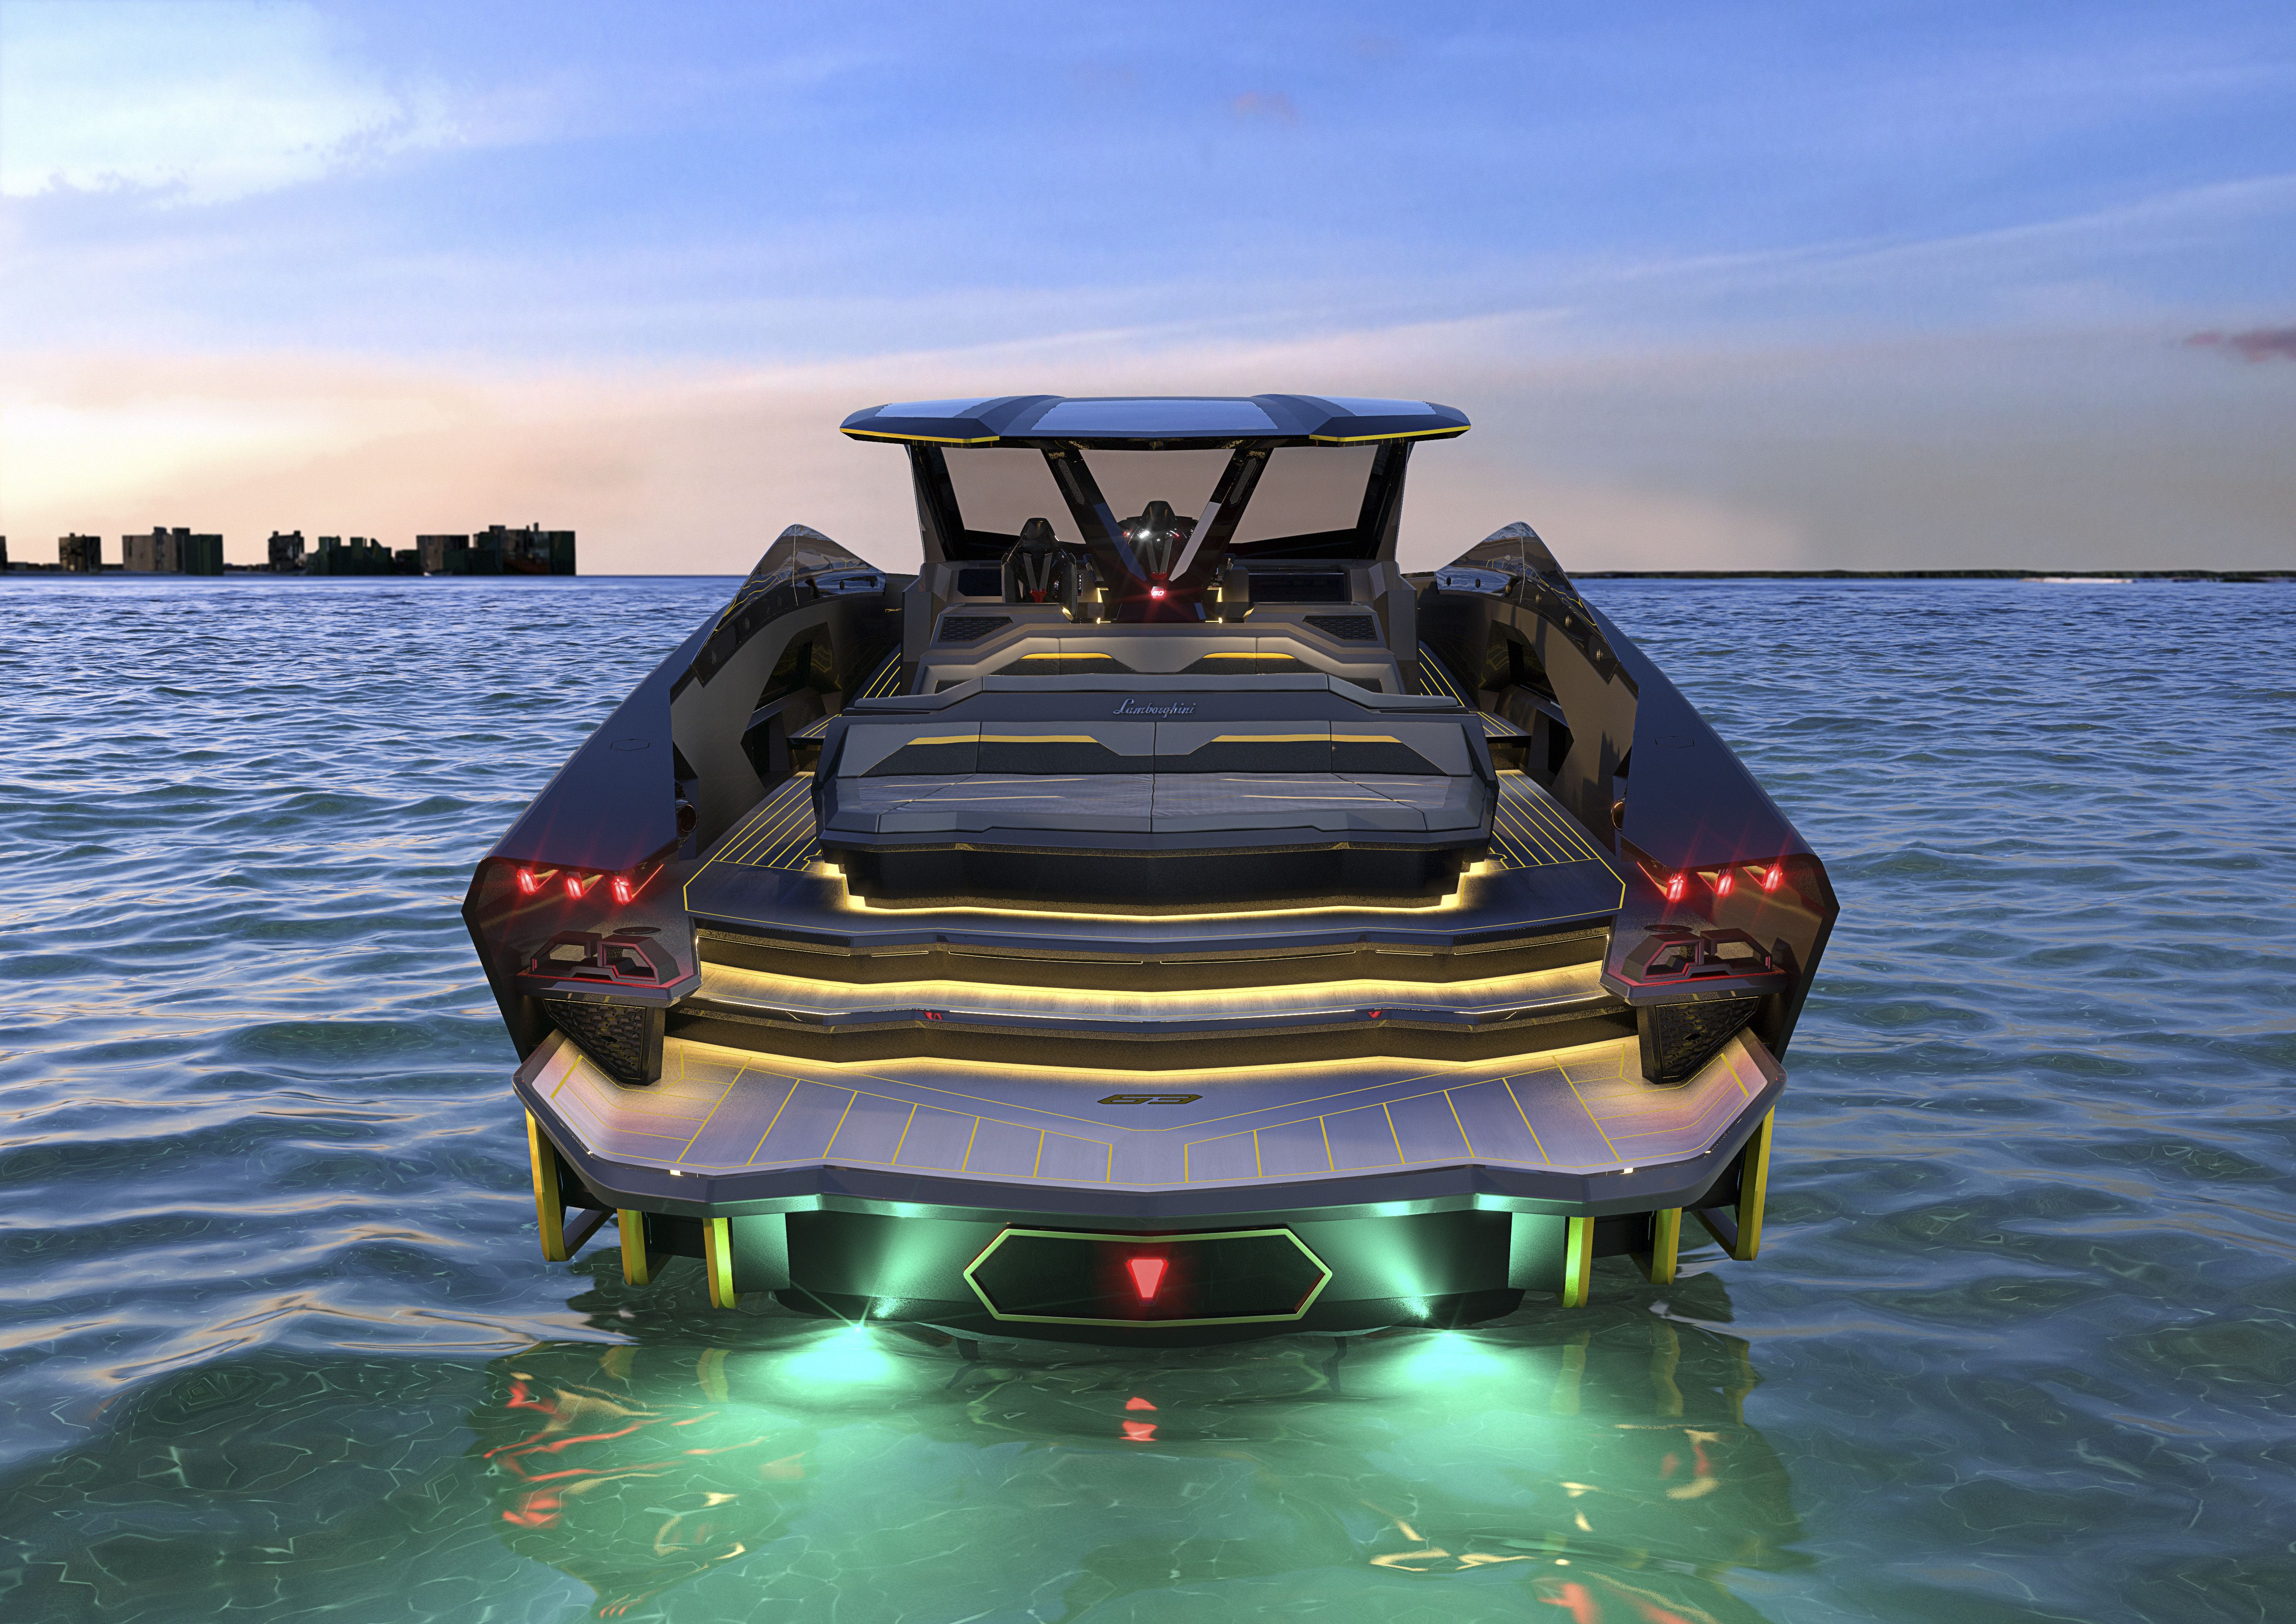 Automobili Lamborghini and The Italian Sea Group present the worldwide premiere of 'Tecnomar for Lamborghini 63', the Tecnomar fleet's new motor yacht available in a limited edition in reference to Lamborghini's 1963 foundation.   #LamborghiniYacht #CentroStileLamborghini #SeeView #TecnomarYachts #LuxuryLife #LamborghiniBoat #LuxuryBoat #LuxuryYacht #Yacht #Yachts #LamborghiniDesign #BoatLife #ItalianDesign #ItalianEngineering #LamborghiniSIANFKP37